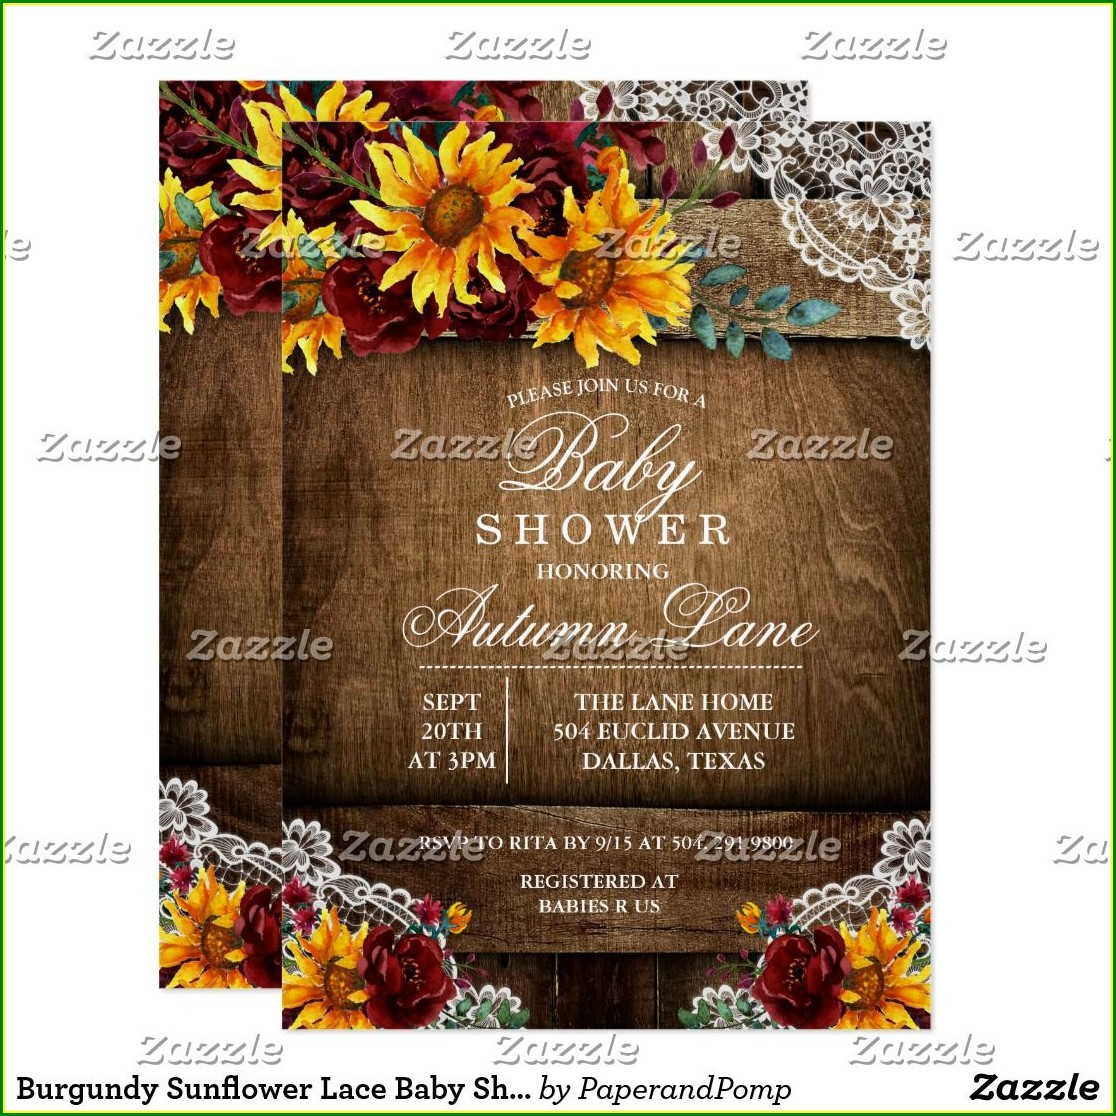 Rehearsal Dinner Invitations Sunflower